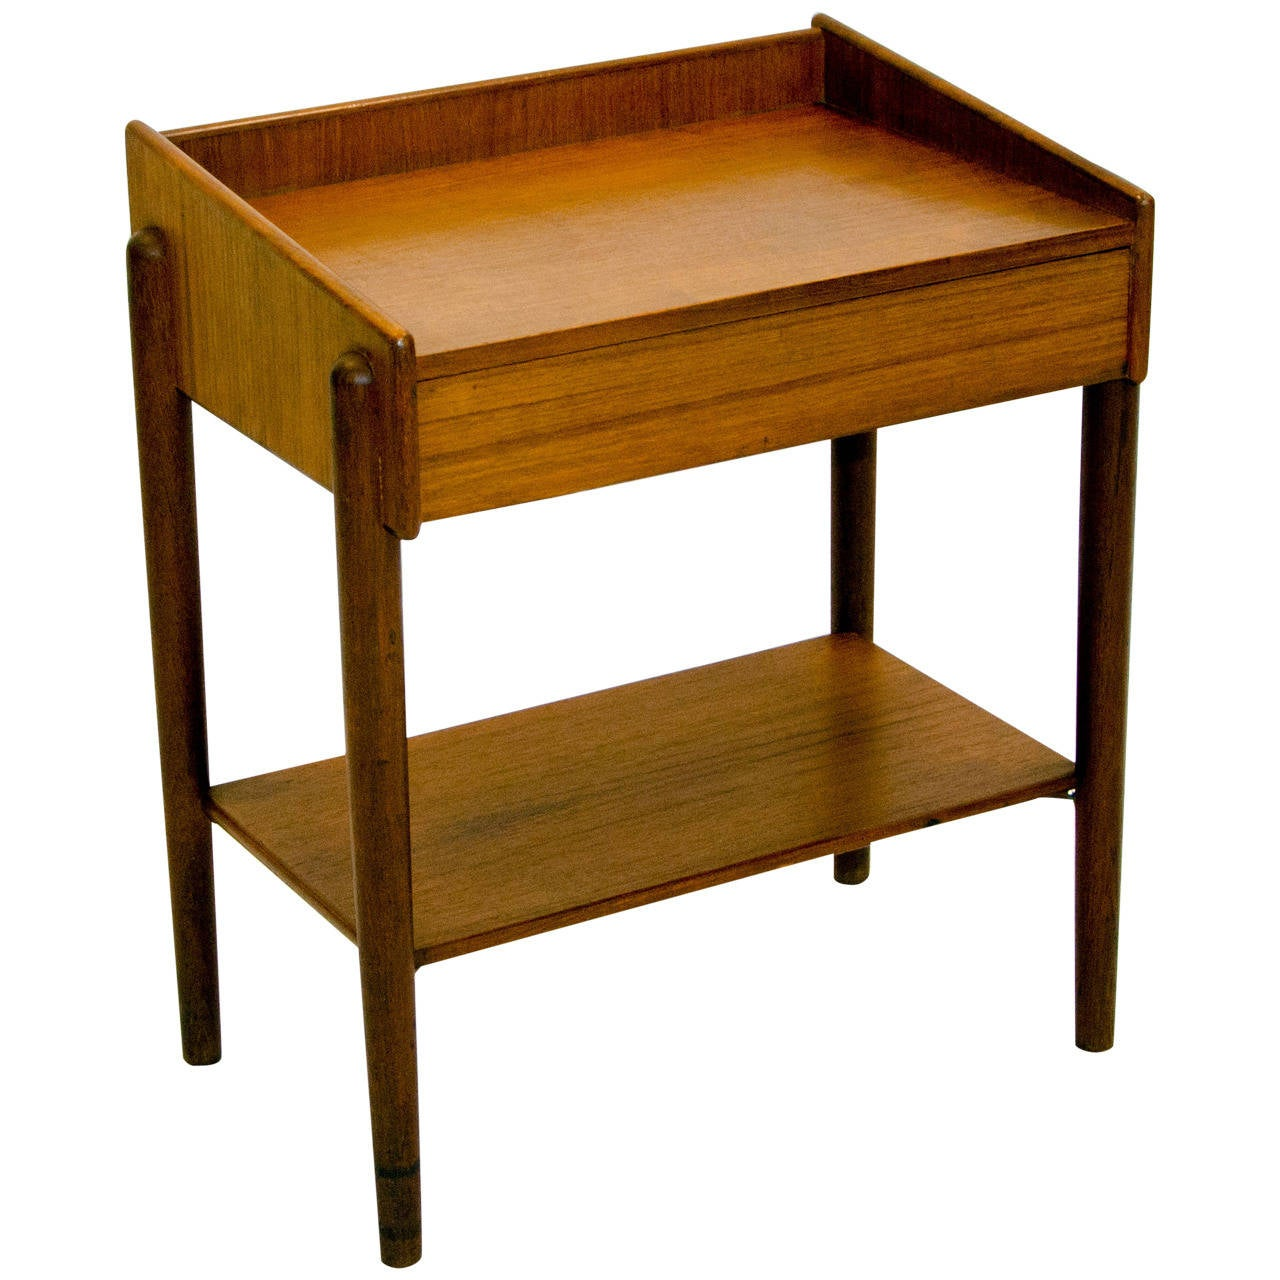 Superb Danish Teak Night Stand Or End Table By Børge Mogensen 1